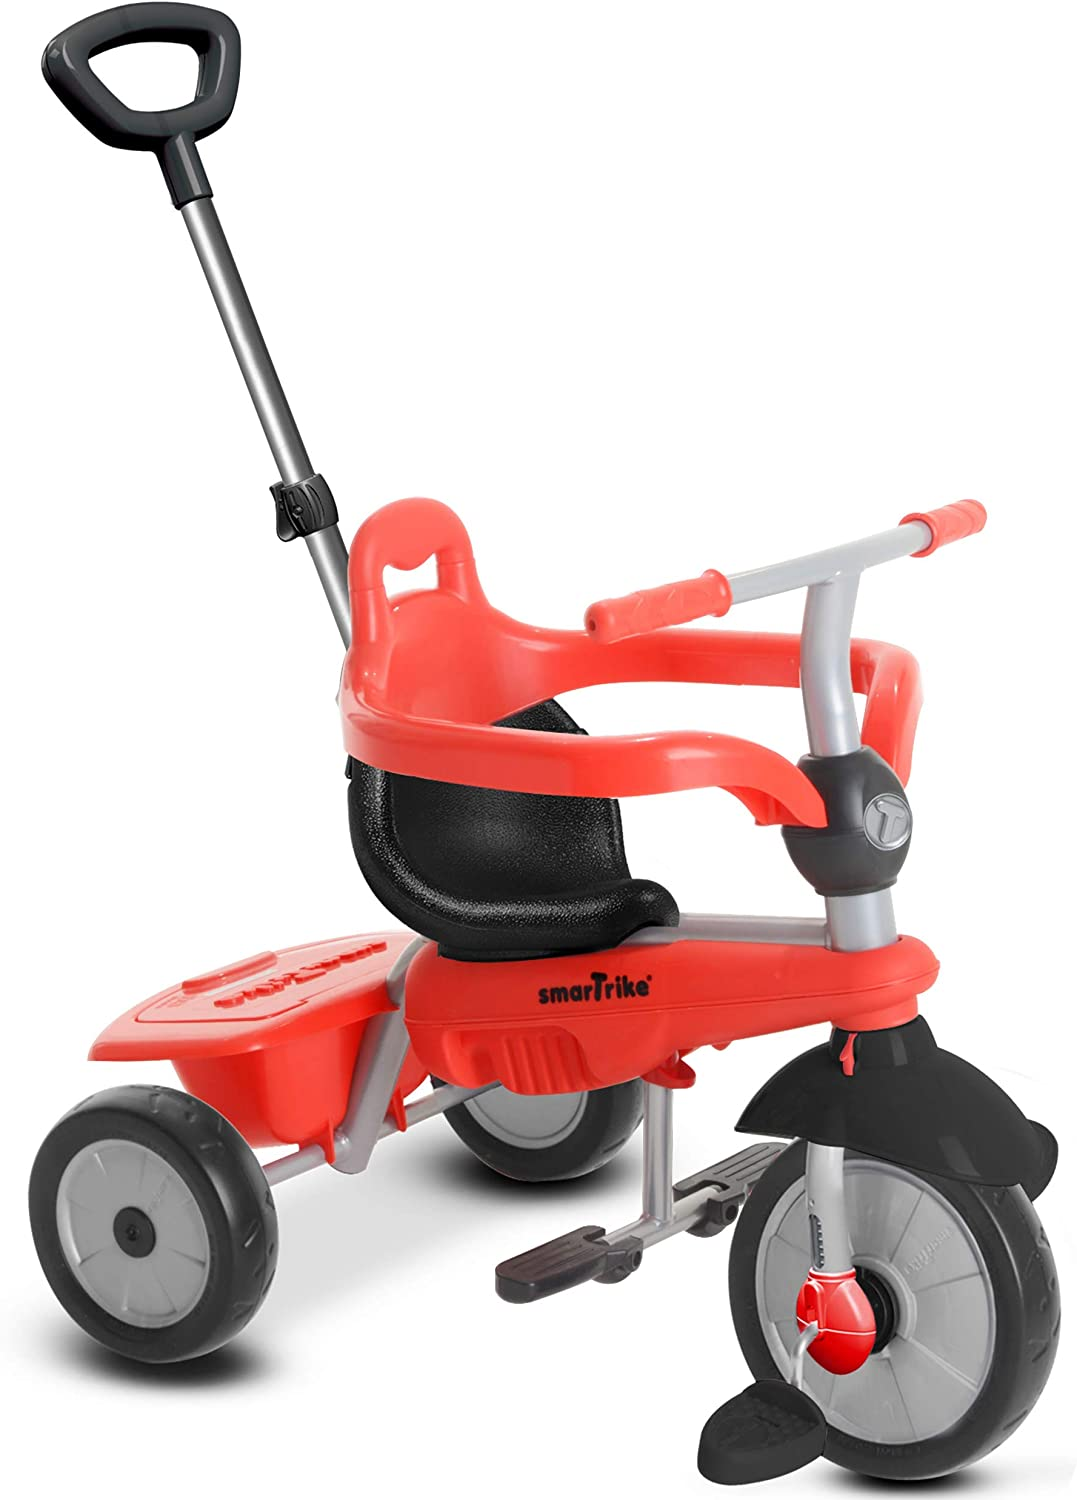 SmarTrike Breeze 3 in 1 Baby Tricycle  Red